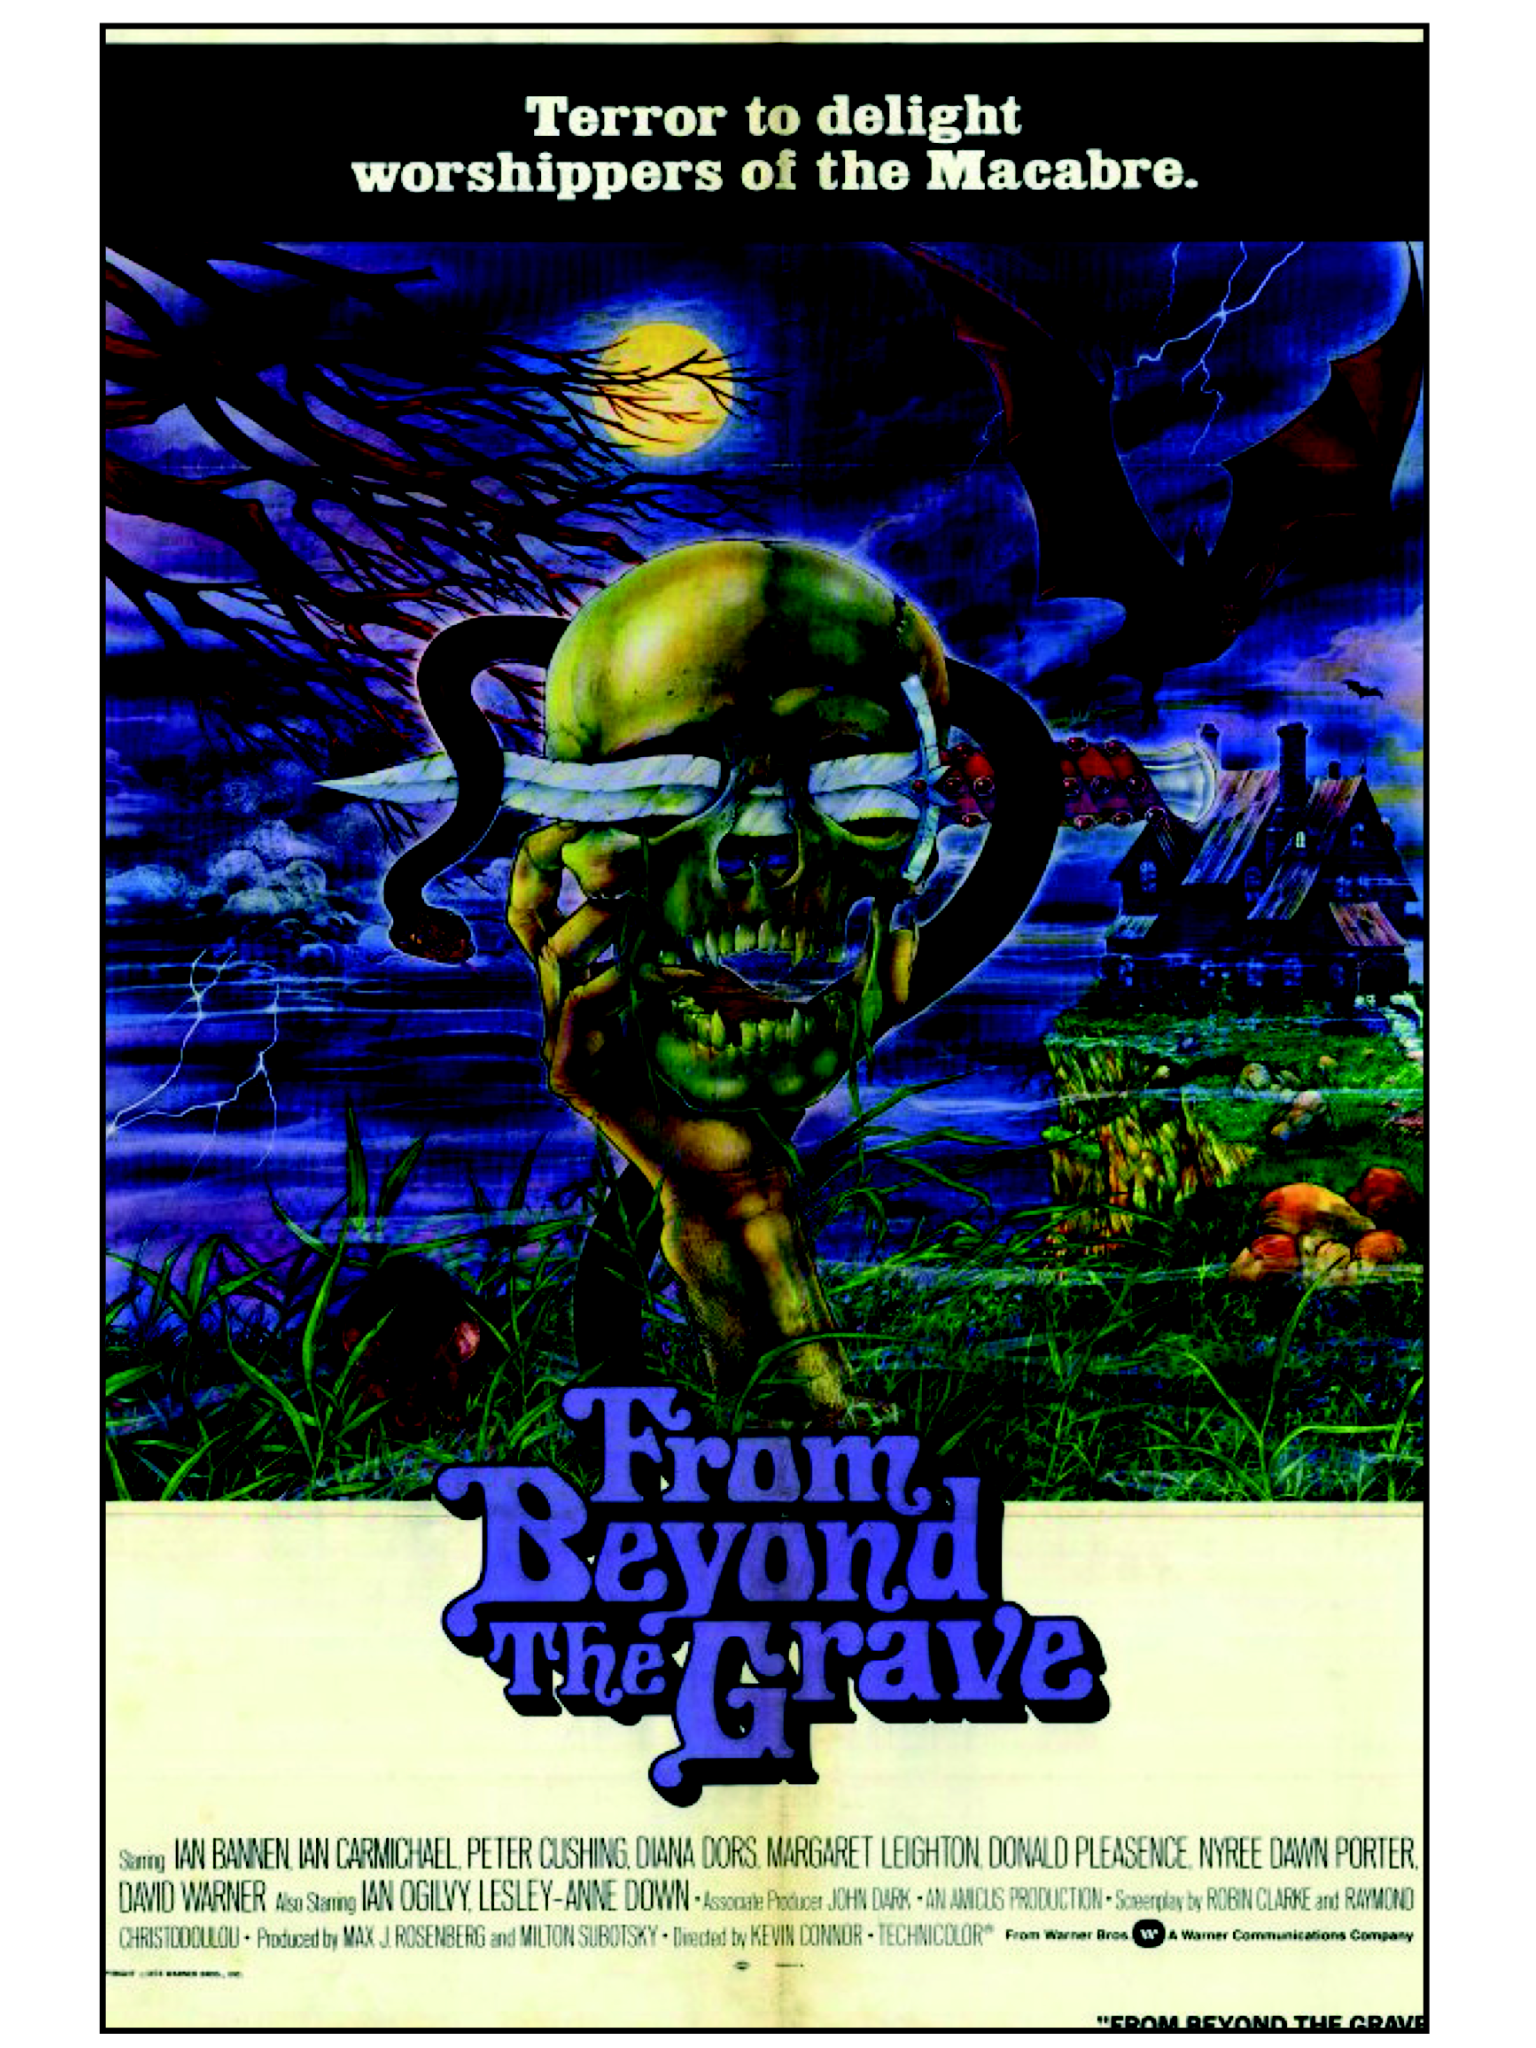 Pin by Jeff Owens on Amicus Films in 2019 | Horror posters